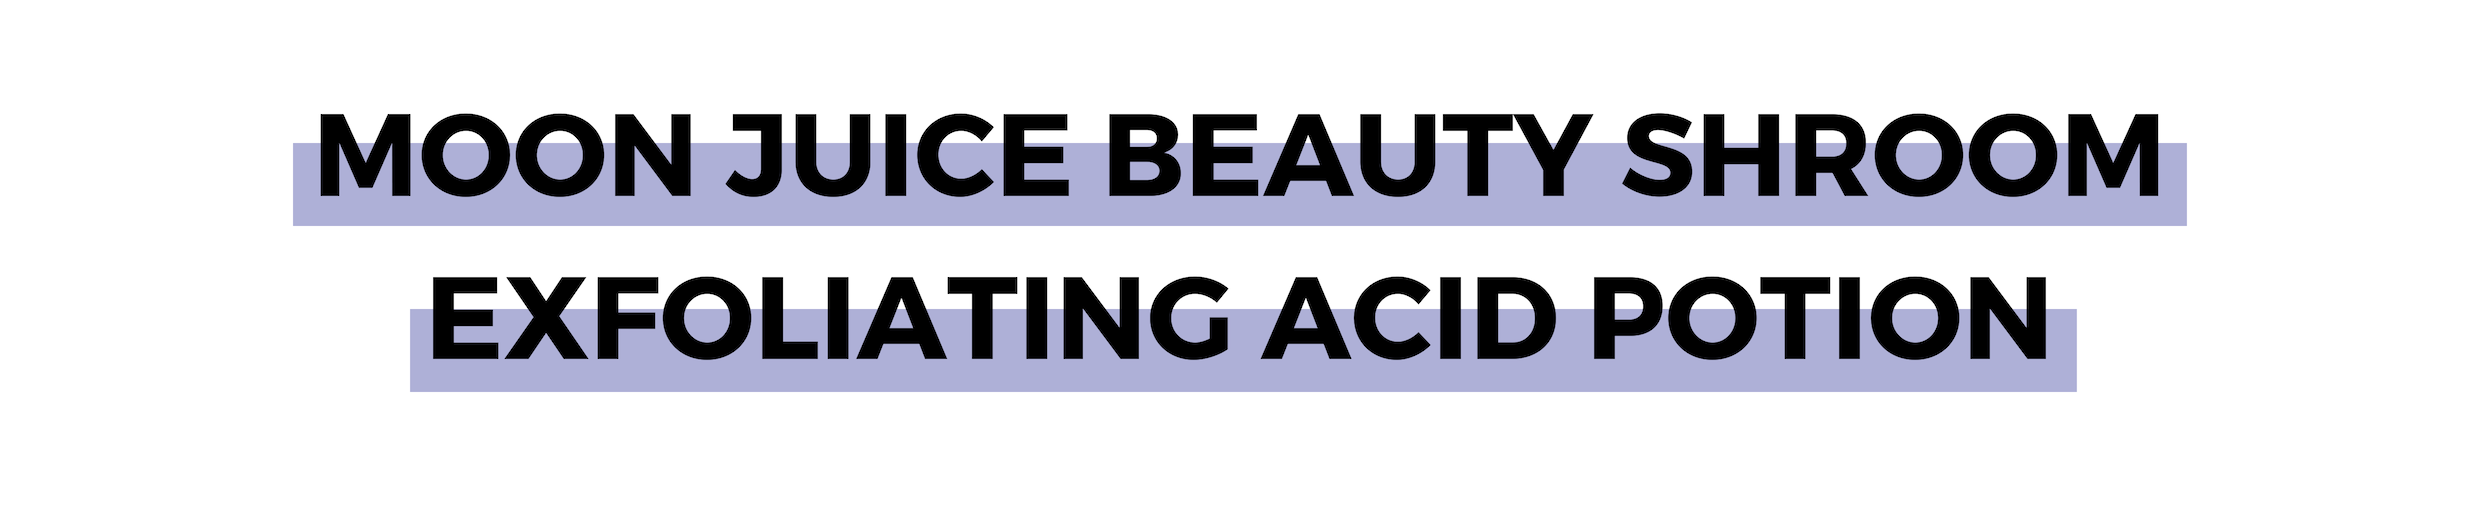 MOON JUICE BEAUTY SHROOM EXFOLIATING ACID POTION.png